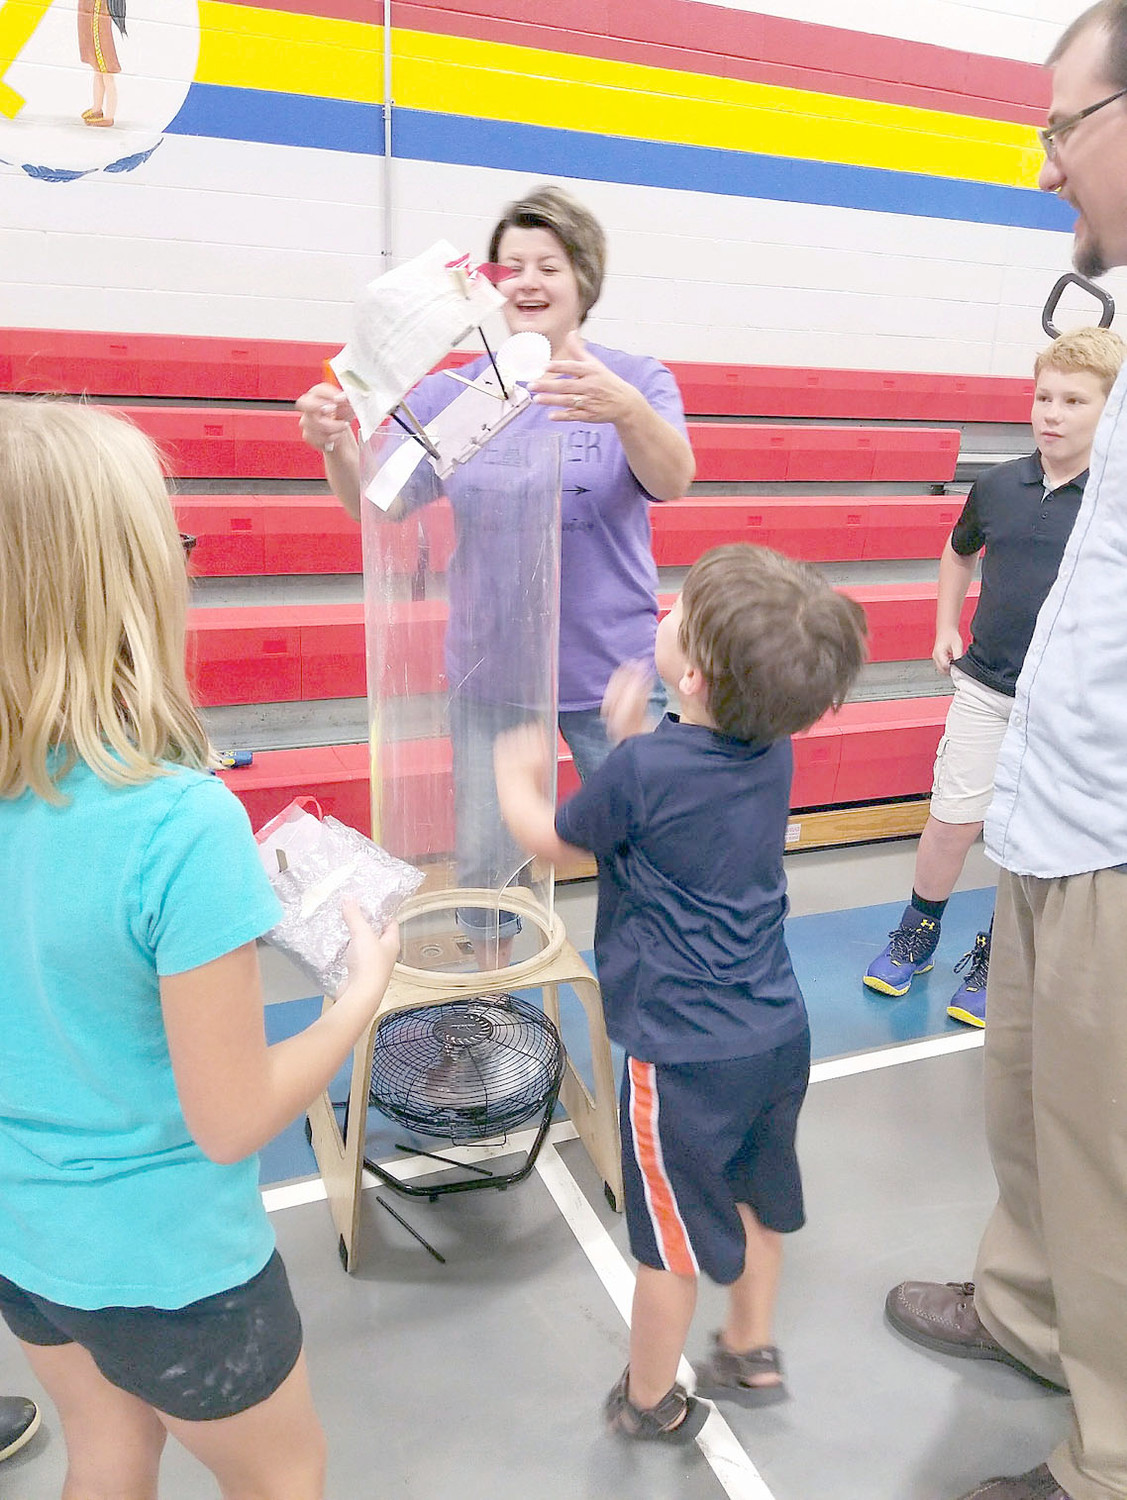 STUDENTS used common household items, such as cupcake liners, popsicle sticks, and glue, to see if they could create something that would fly, during STEAM Family Night at Waterville Community Elementary.